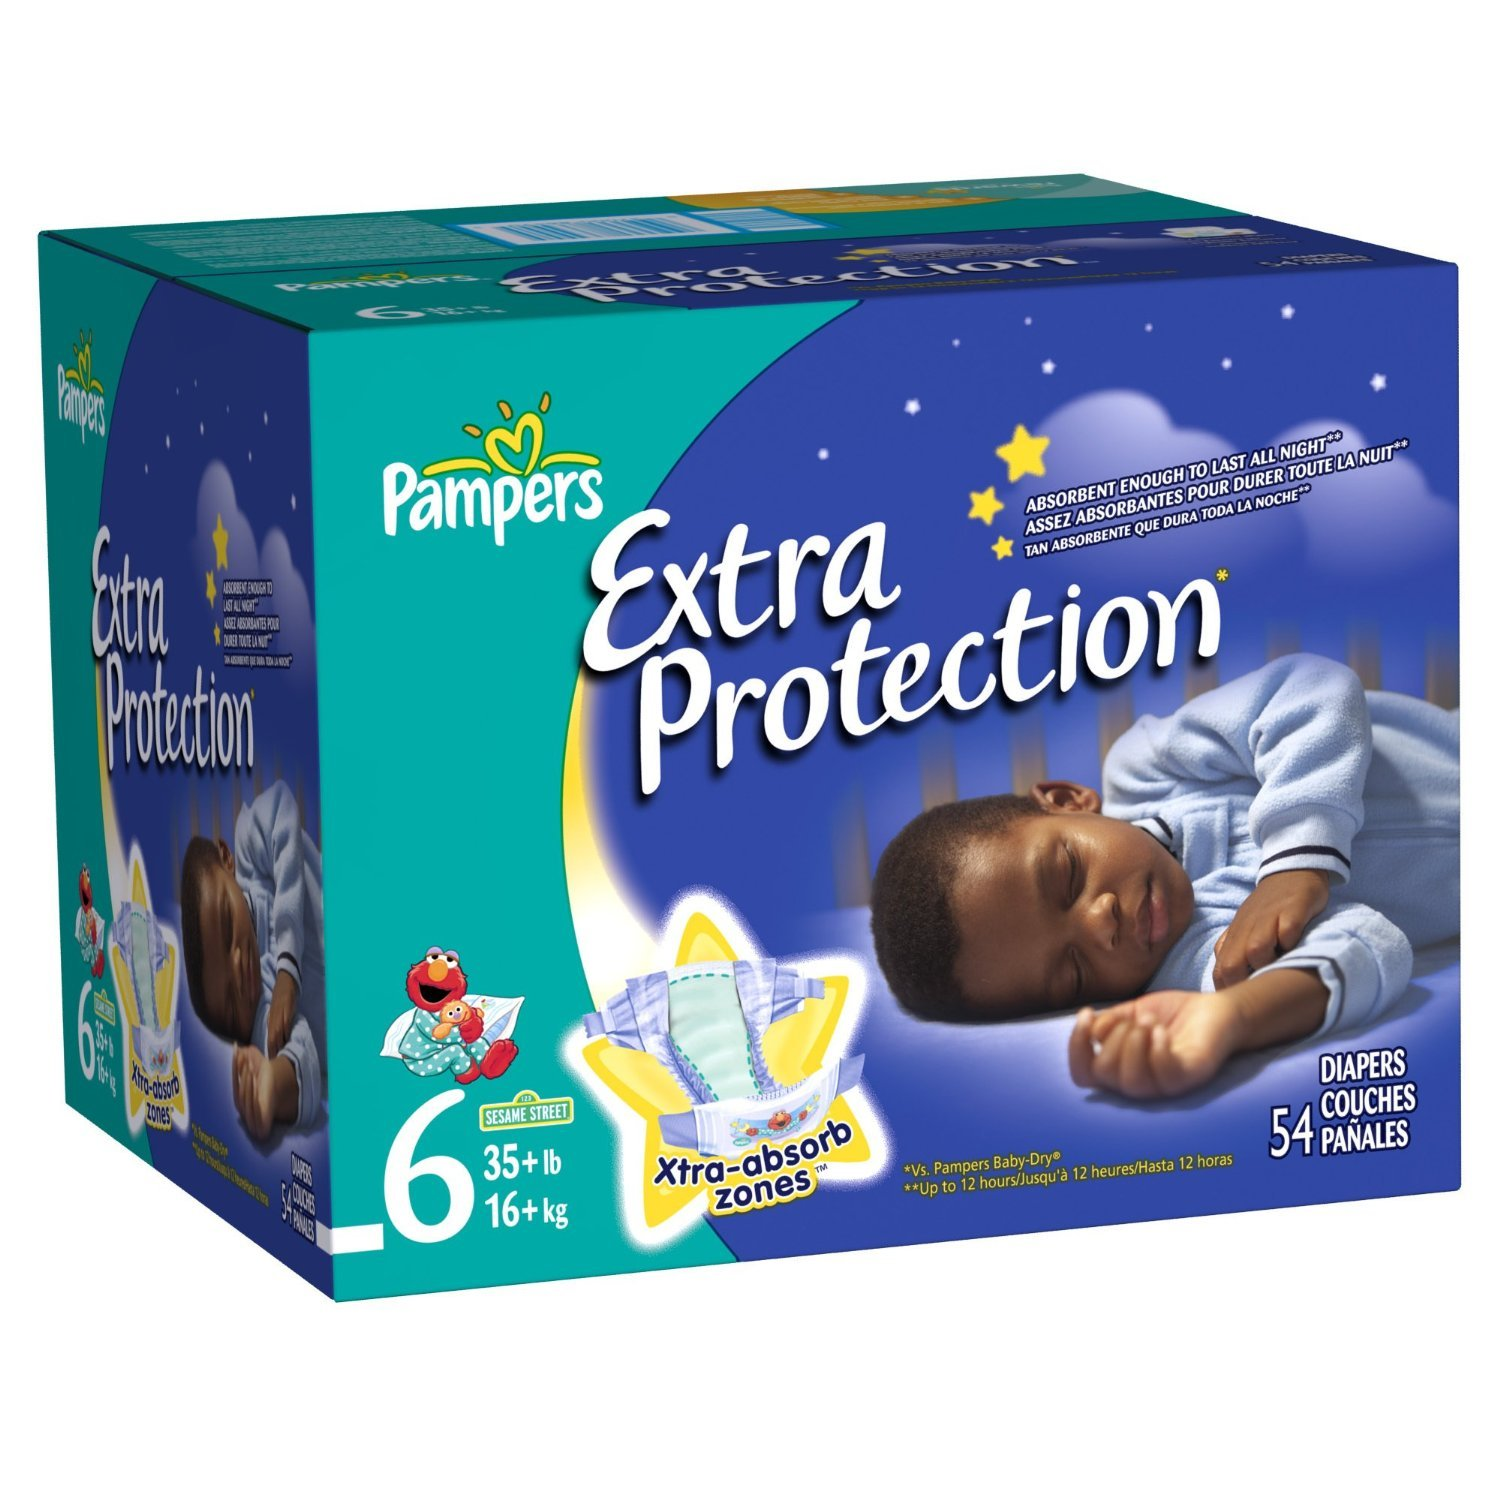 Pampers Baby Dry Extra Protection Diapers Size 6 - 54 ...